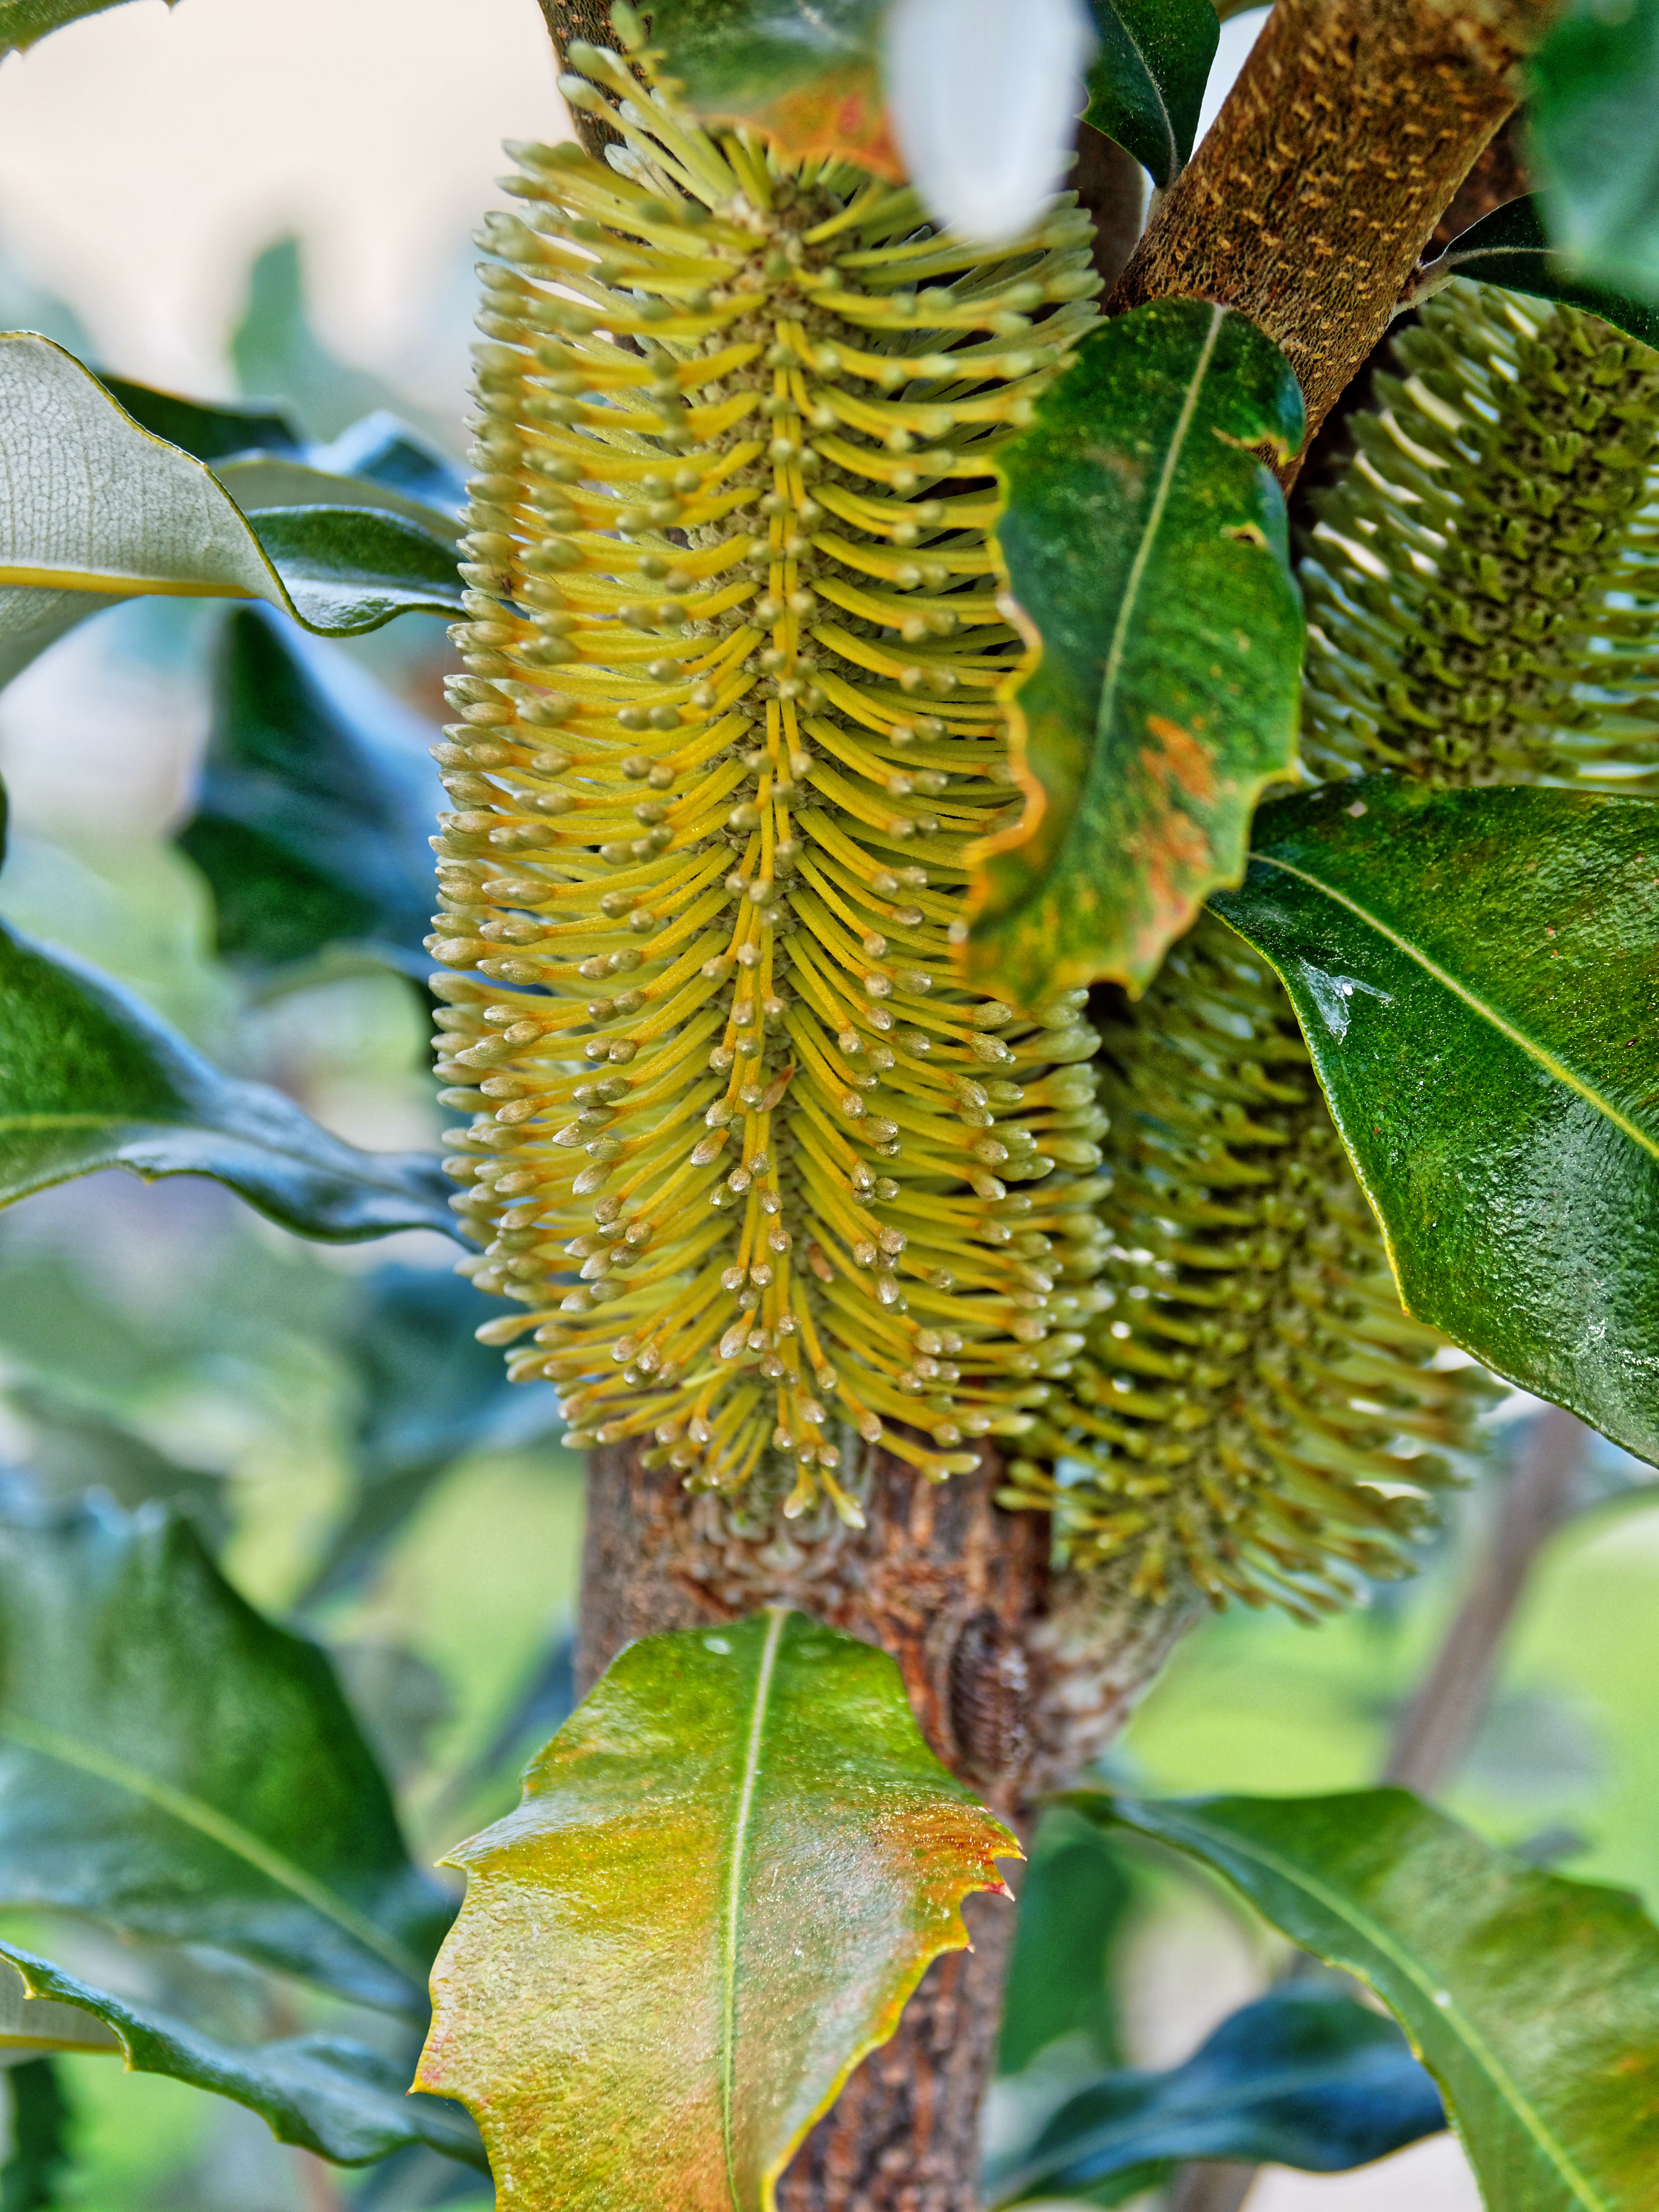 This should be Banksia.jpeg.  Is it missing?